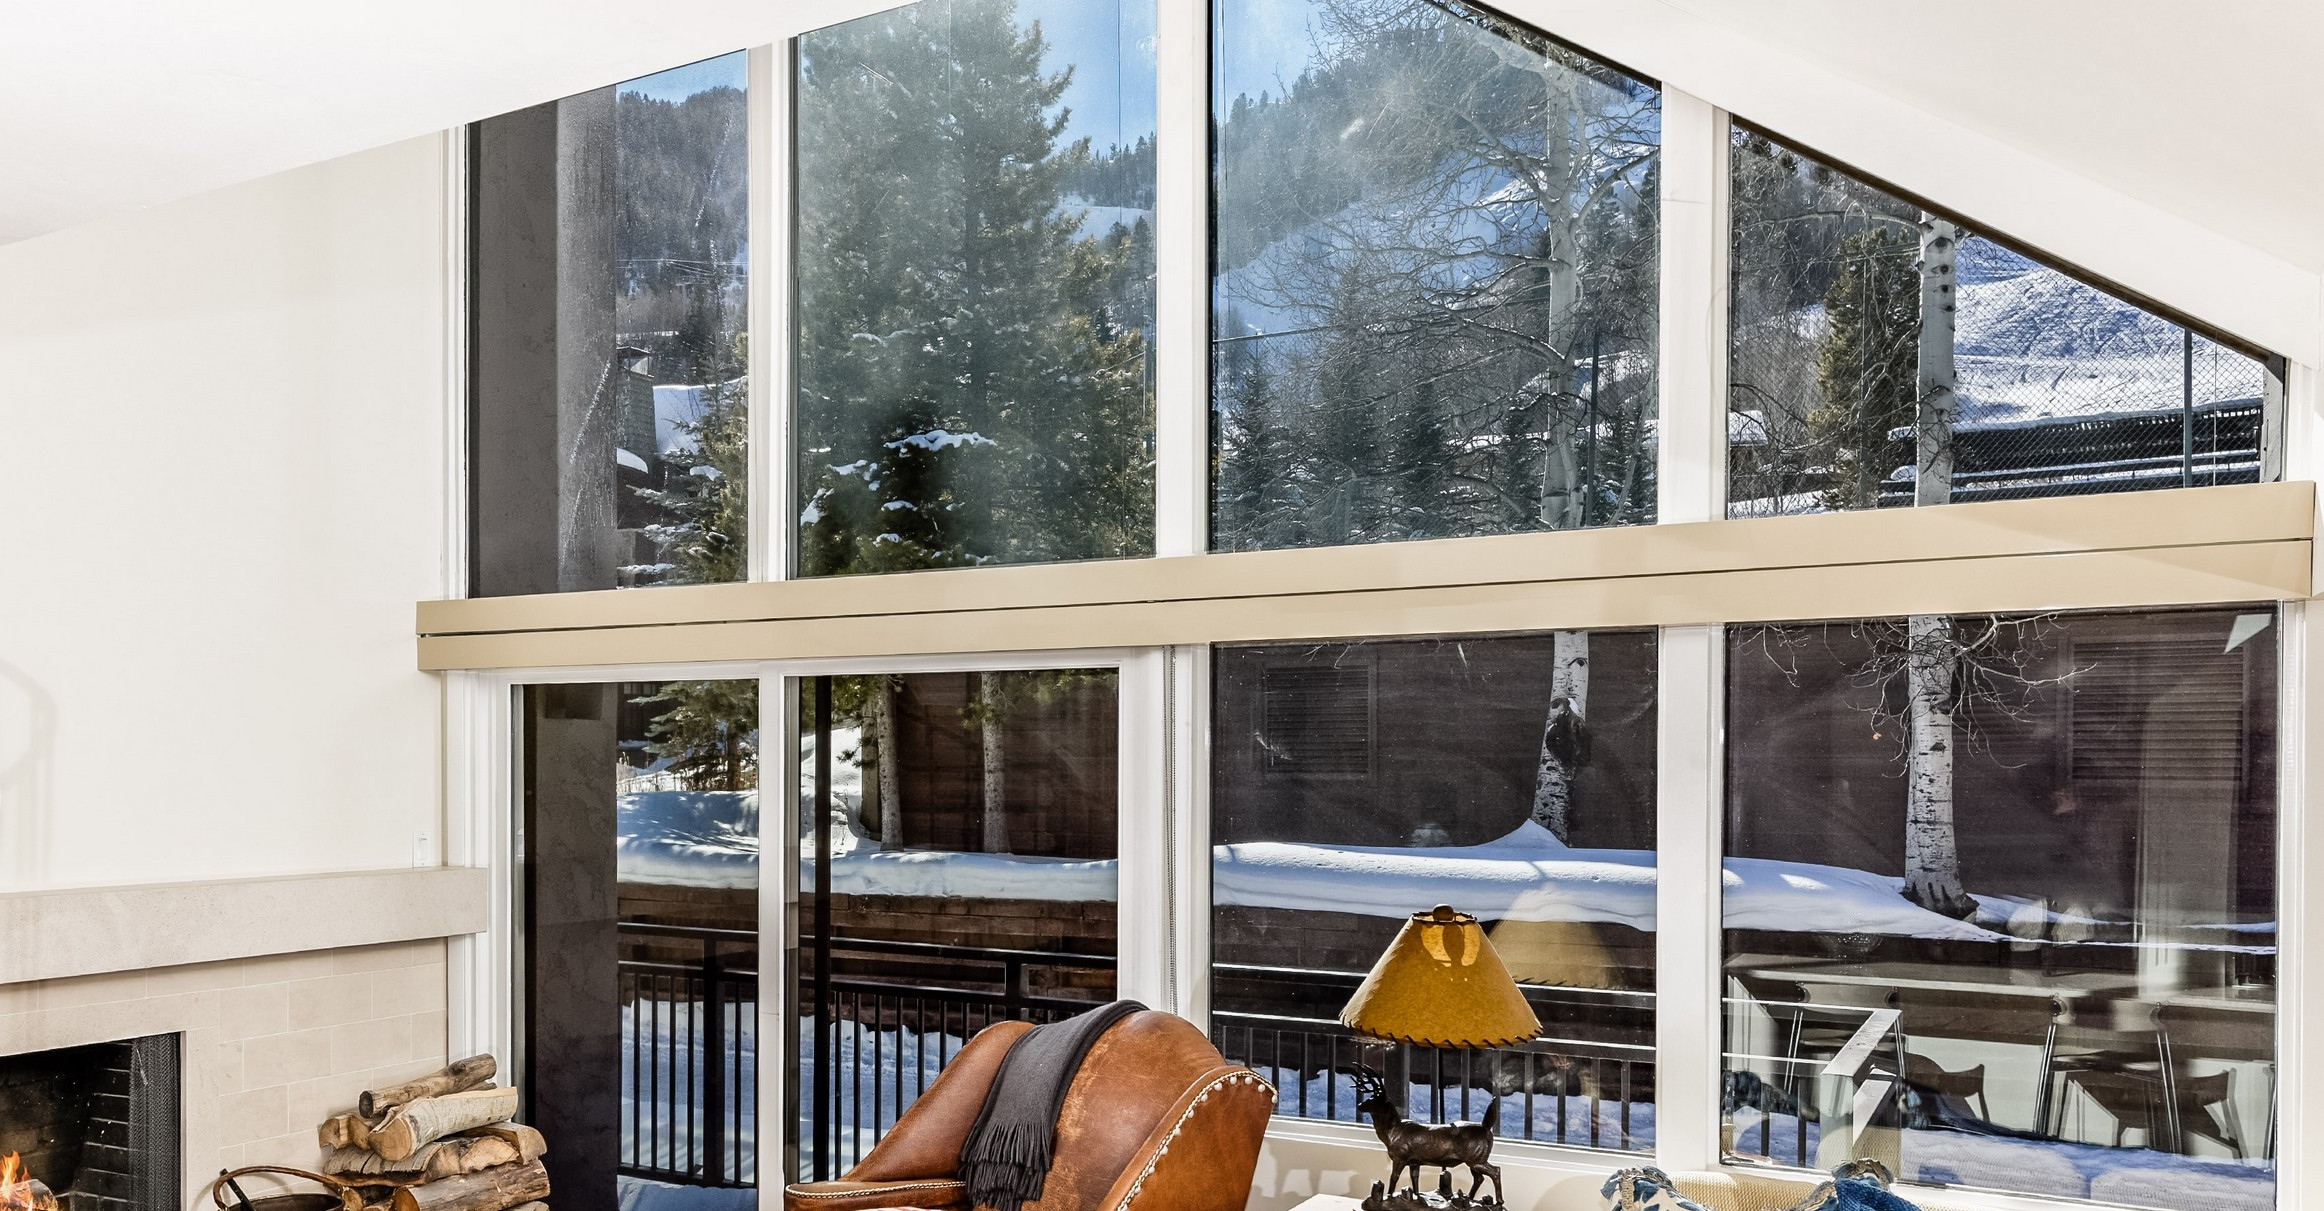 Condominium for Sale at Rarely Available Mountain Retreat 700 S Monarch Street 204 Aspen, Colorado, 81611 United States